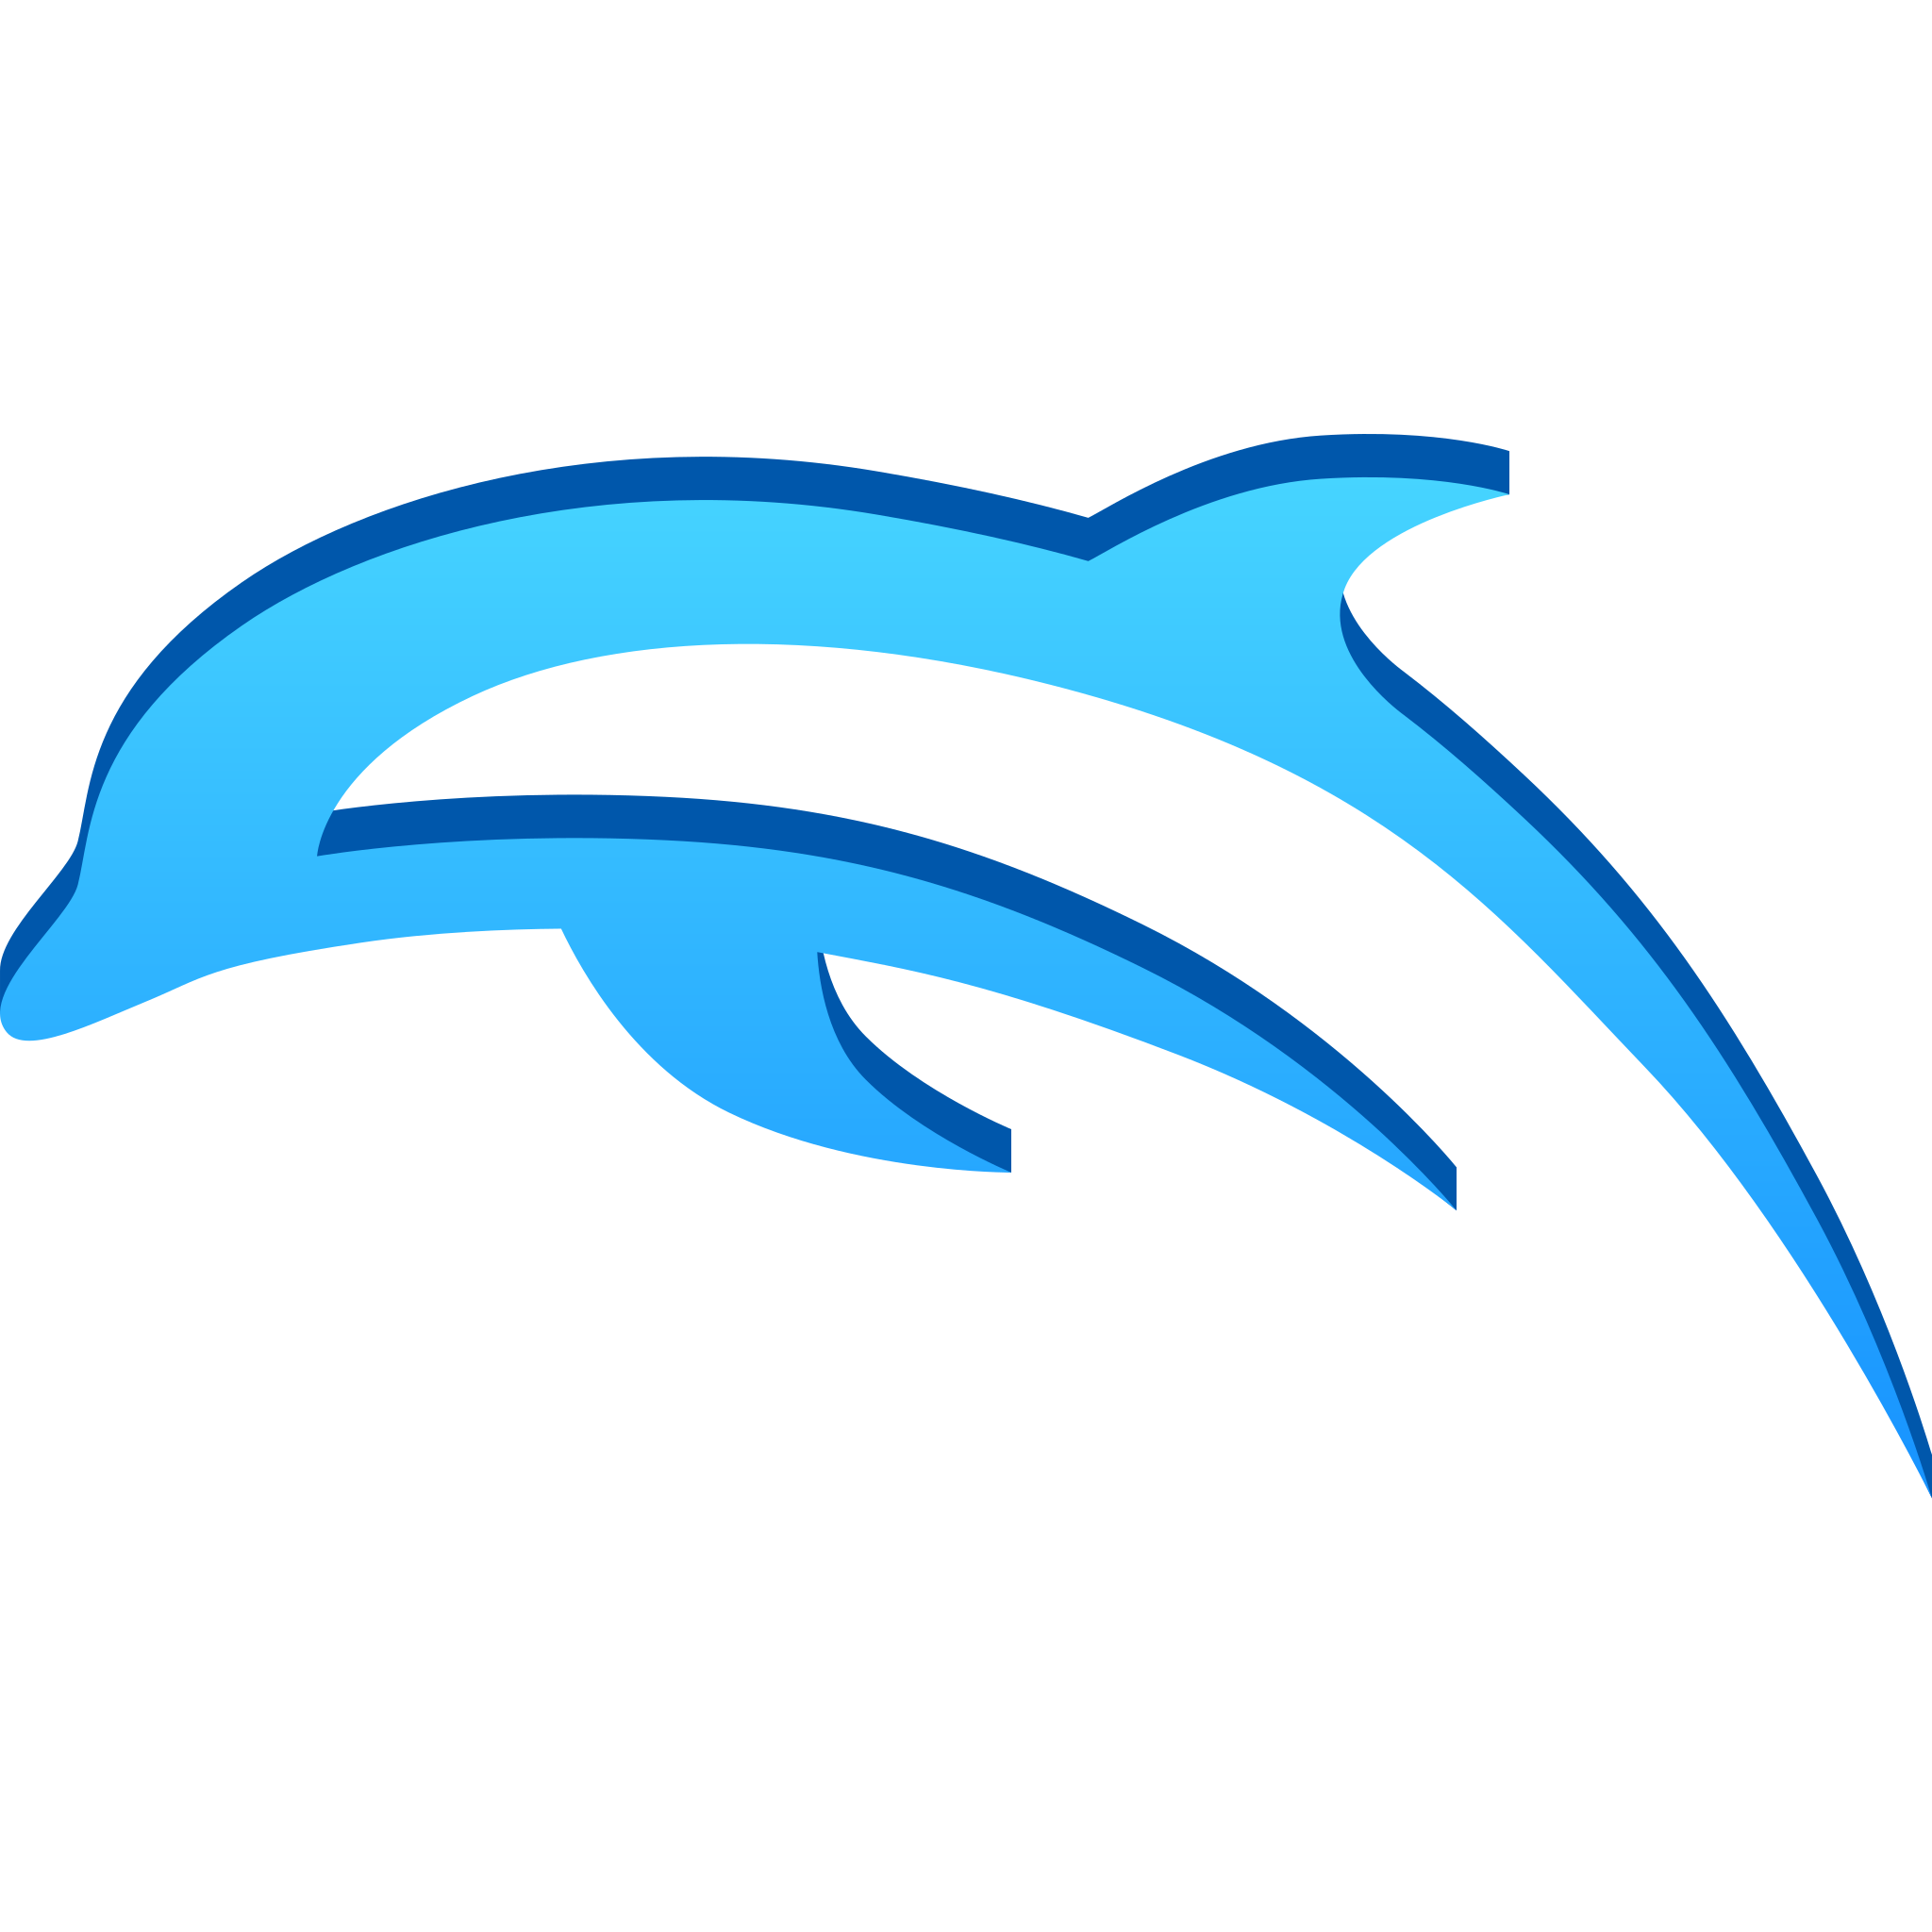 File logo svg wikimedia. Dolphin clipart blue dolphin